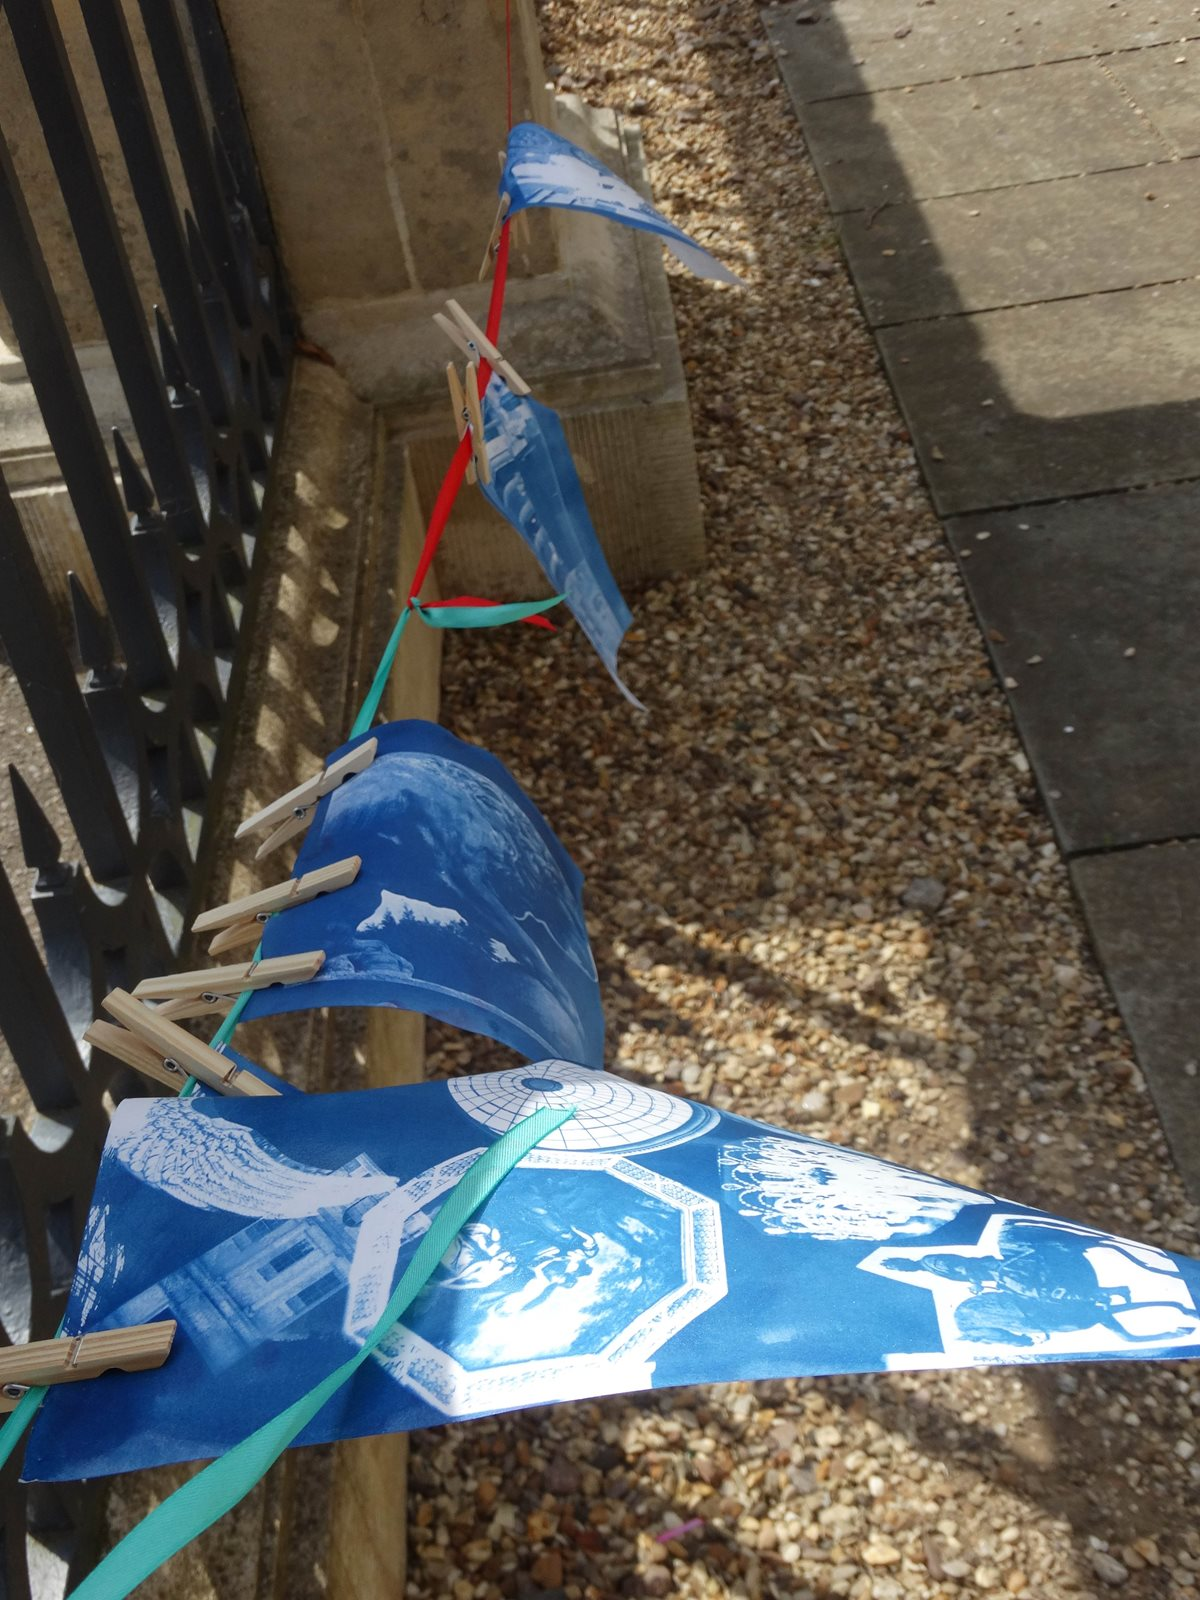 Cyanotypes-on-the-washing-line